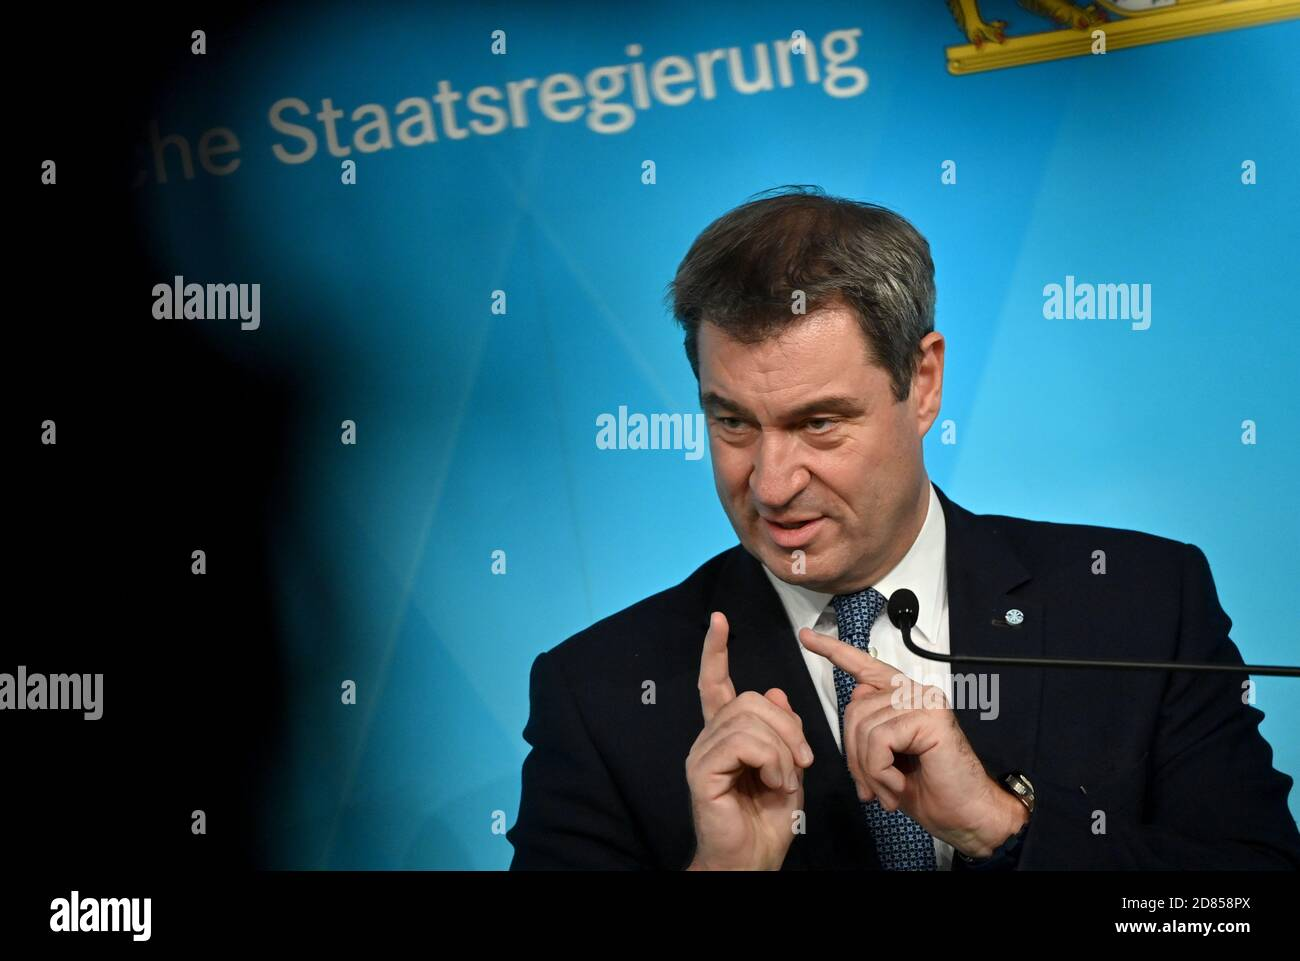 Munich, Germany. 27th Oct, 2020. Markus Söder (CSU), Prime Minister of Bavaria, will speak at a press conference following the cabinet meeting. Credit: Peter Kneffel/dpa POOL/dpa/Alamy Live News Stock Photo